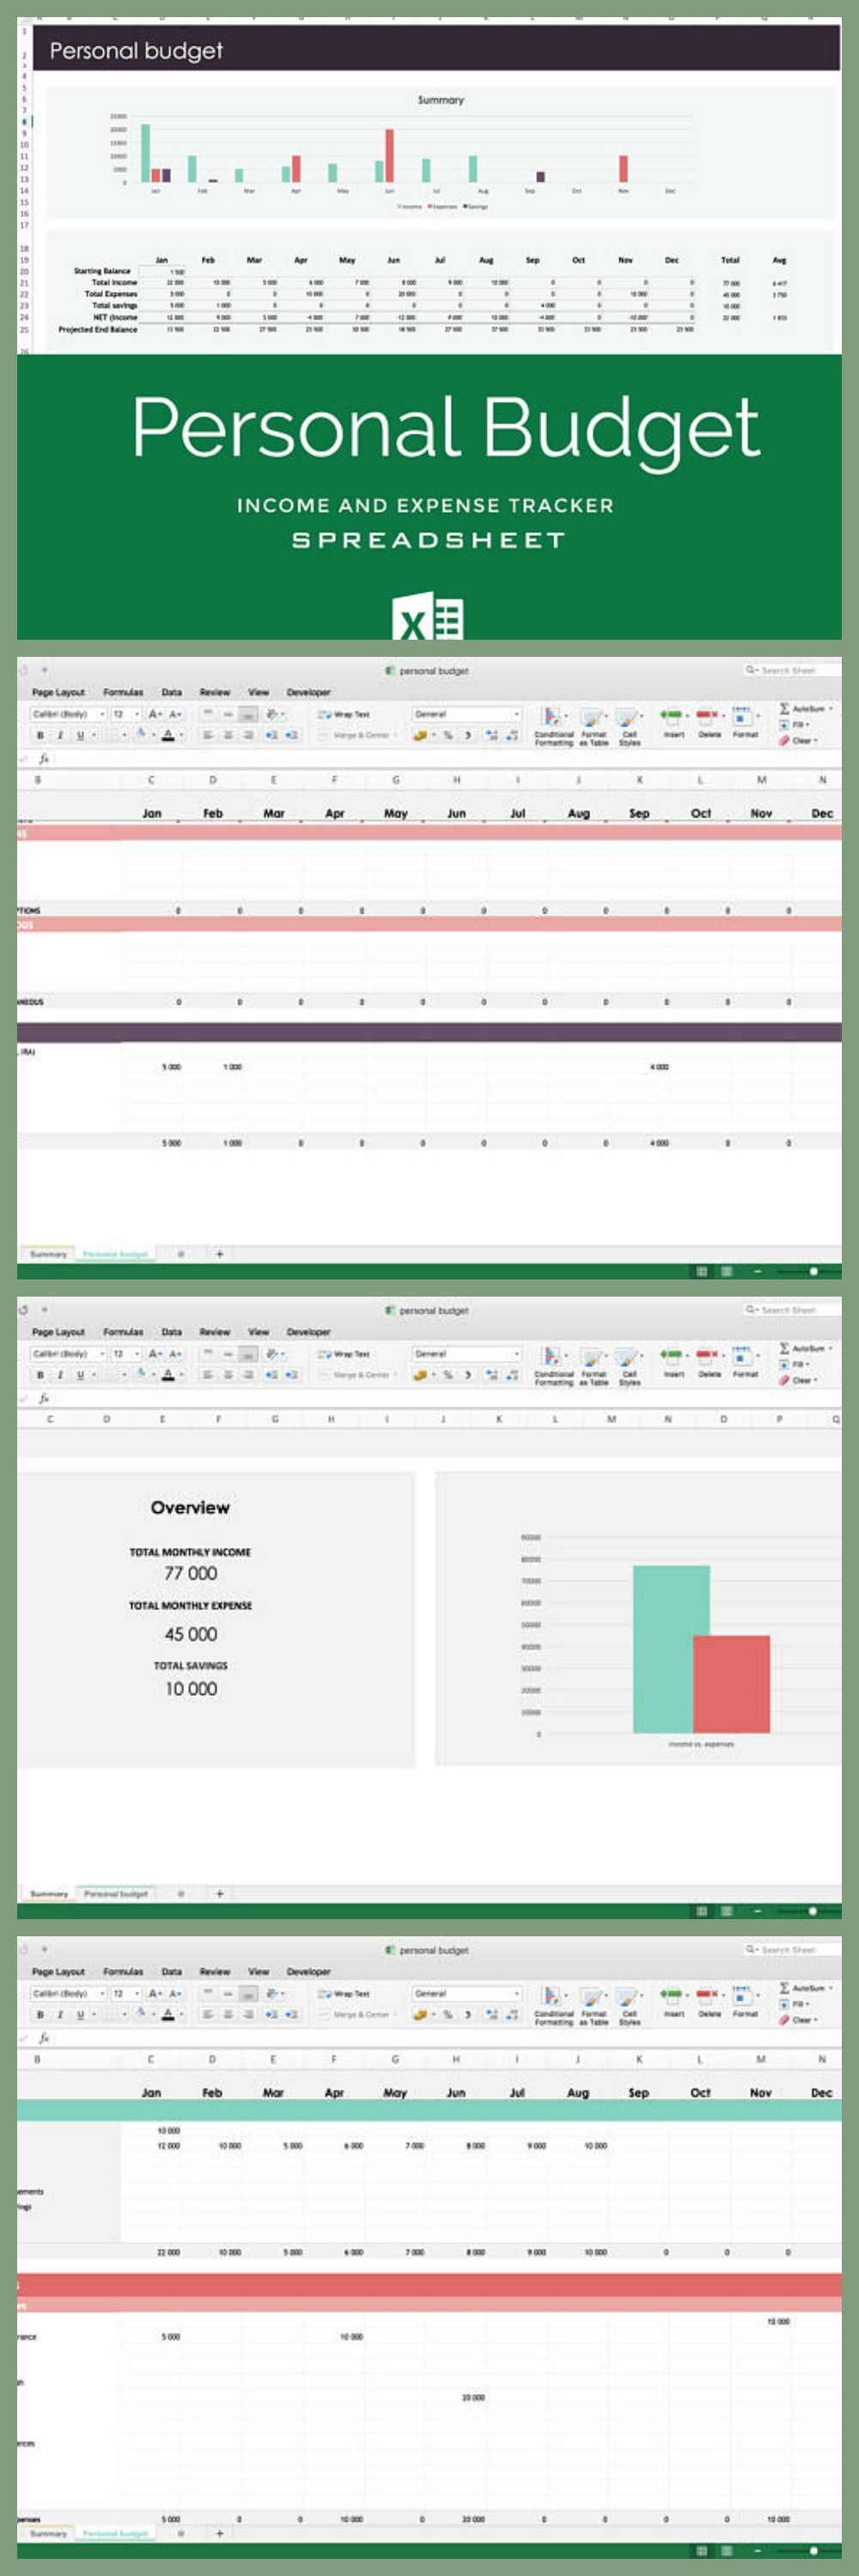 Budget Spreadsheet  Excel Template For Personal Budget  Home